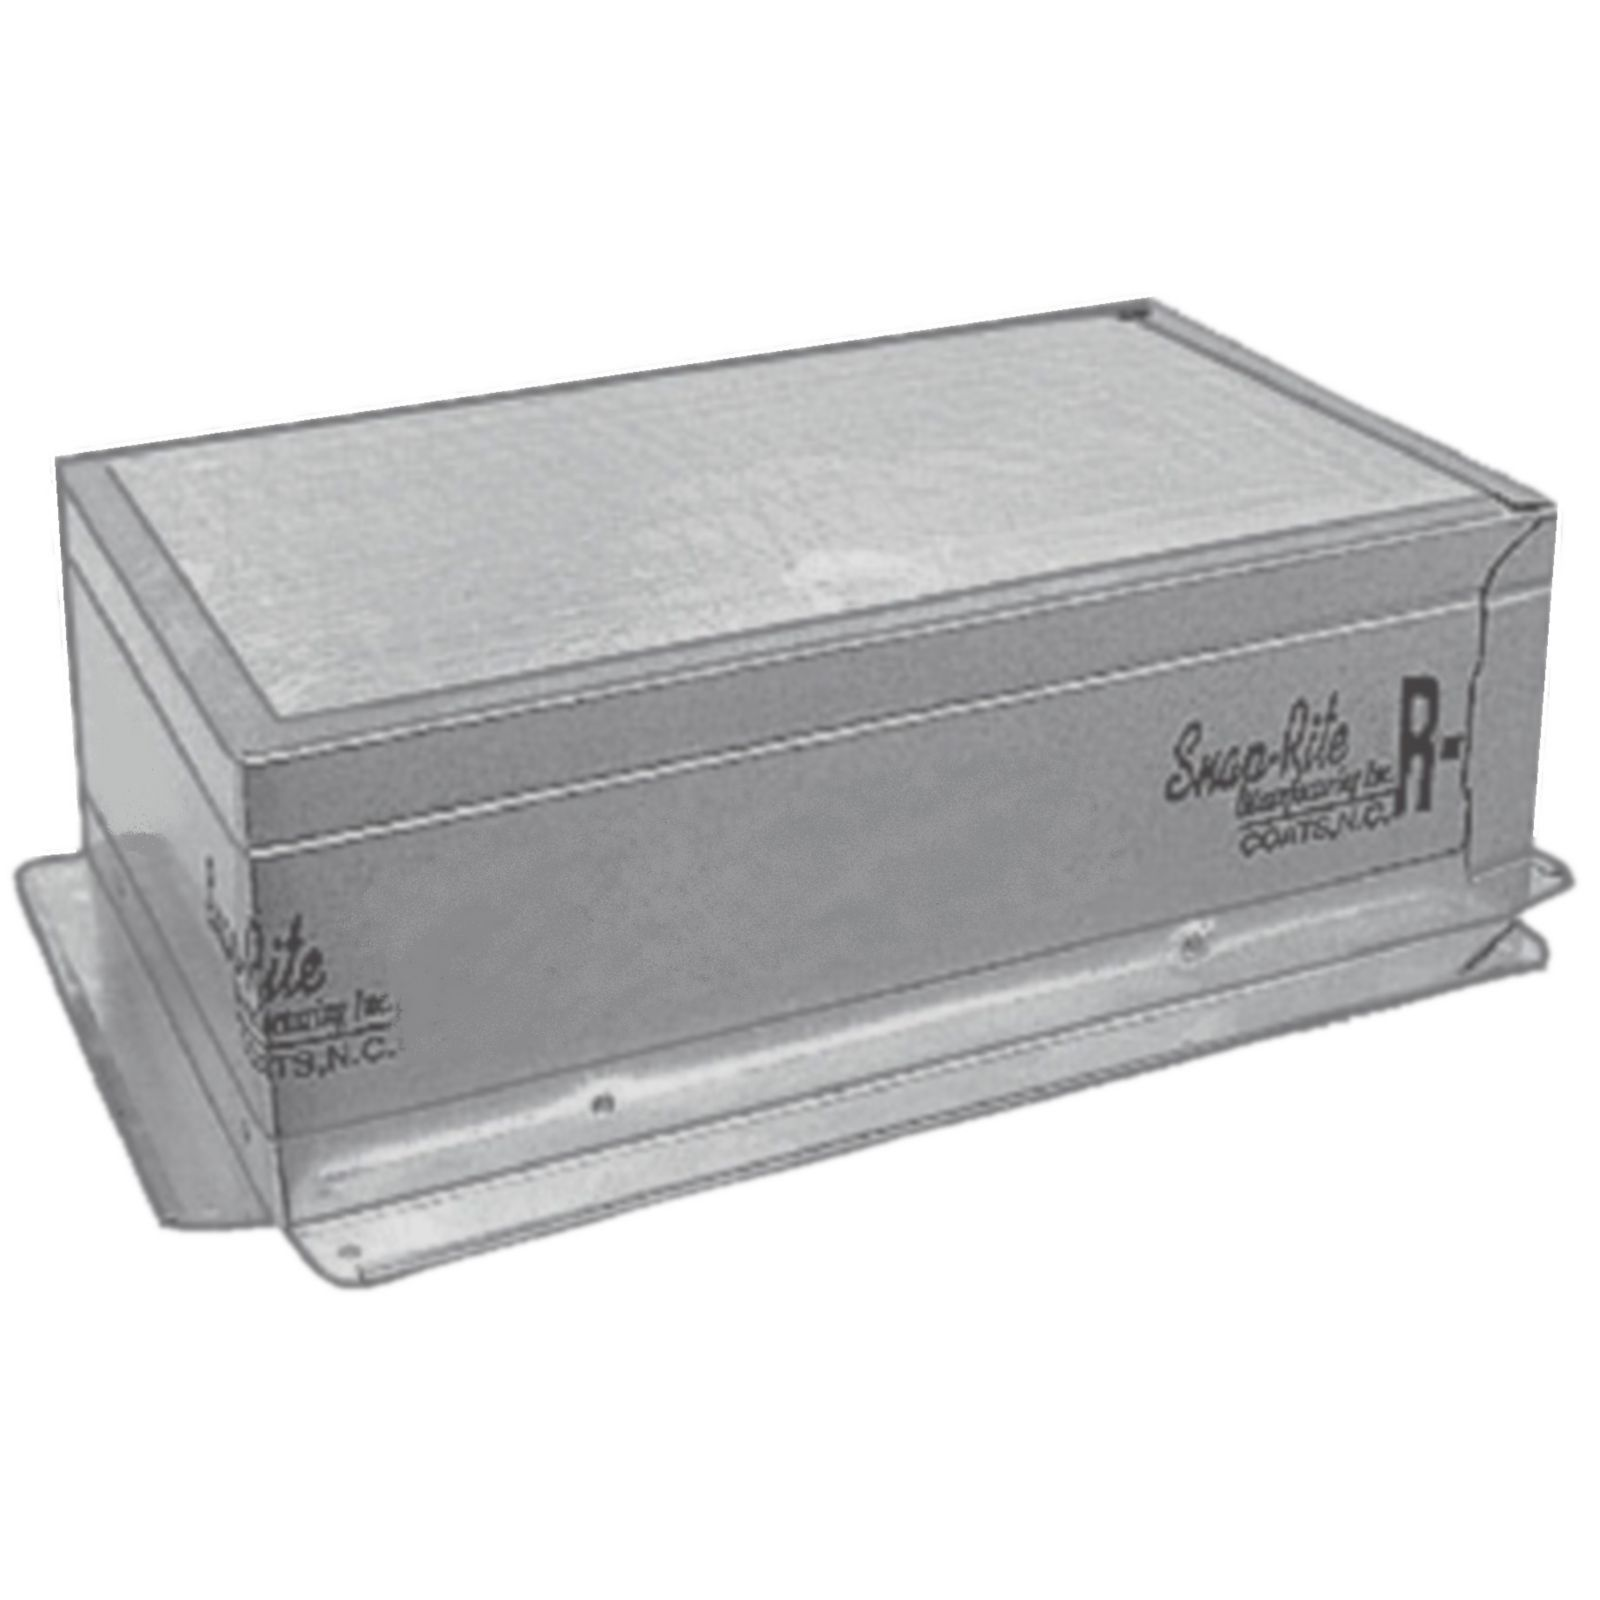 "Snap-Rite 14.5X14.5-3800F - Foil Top Insulated Register Box With Flange, 14.5"" x 14.5"" - R6"